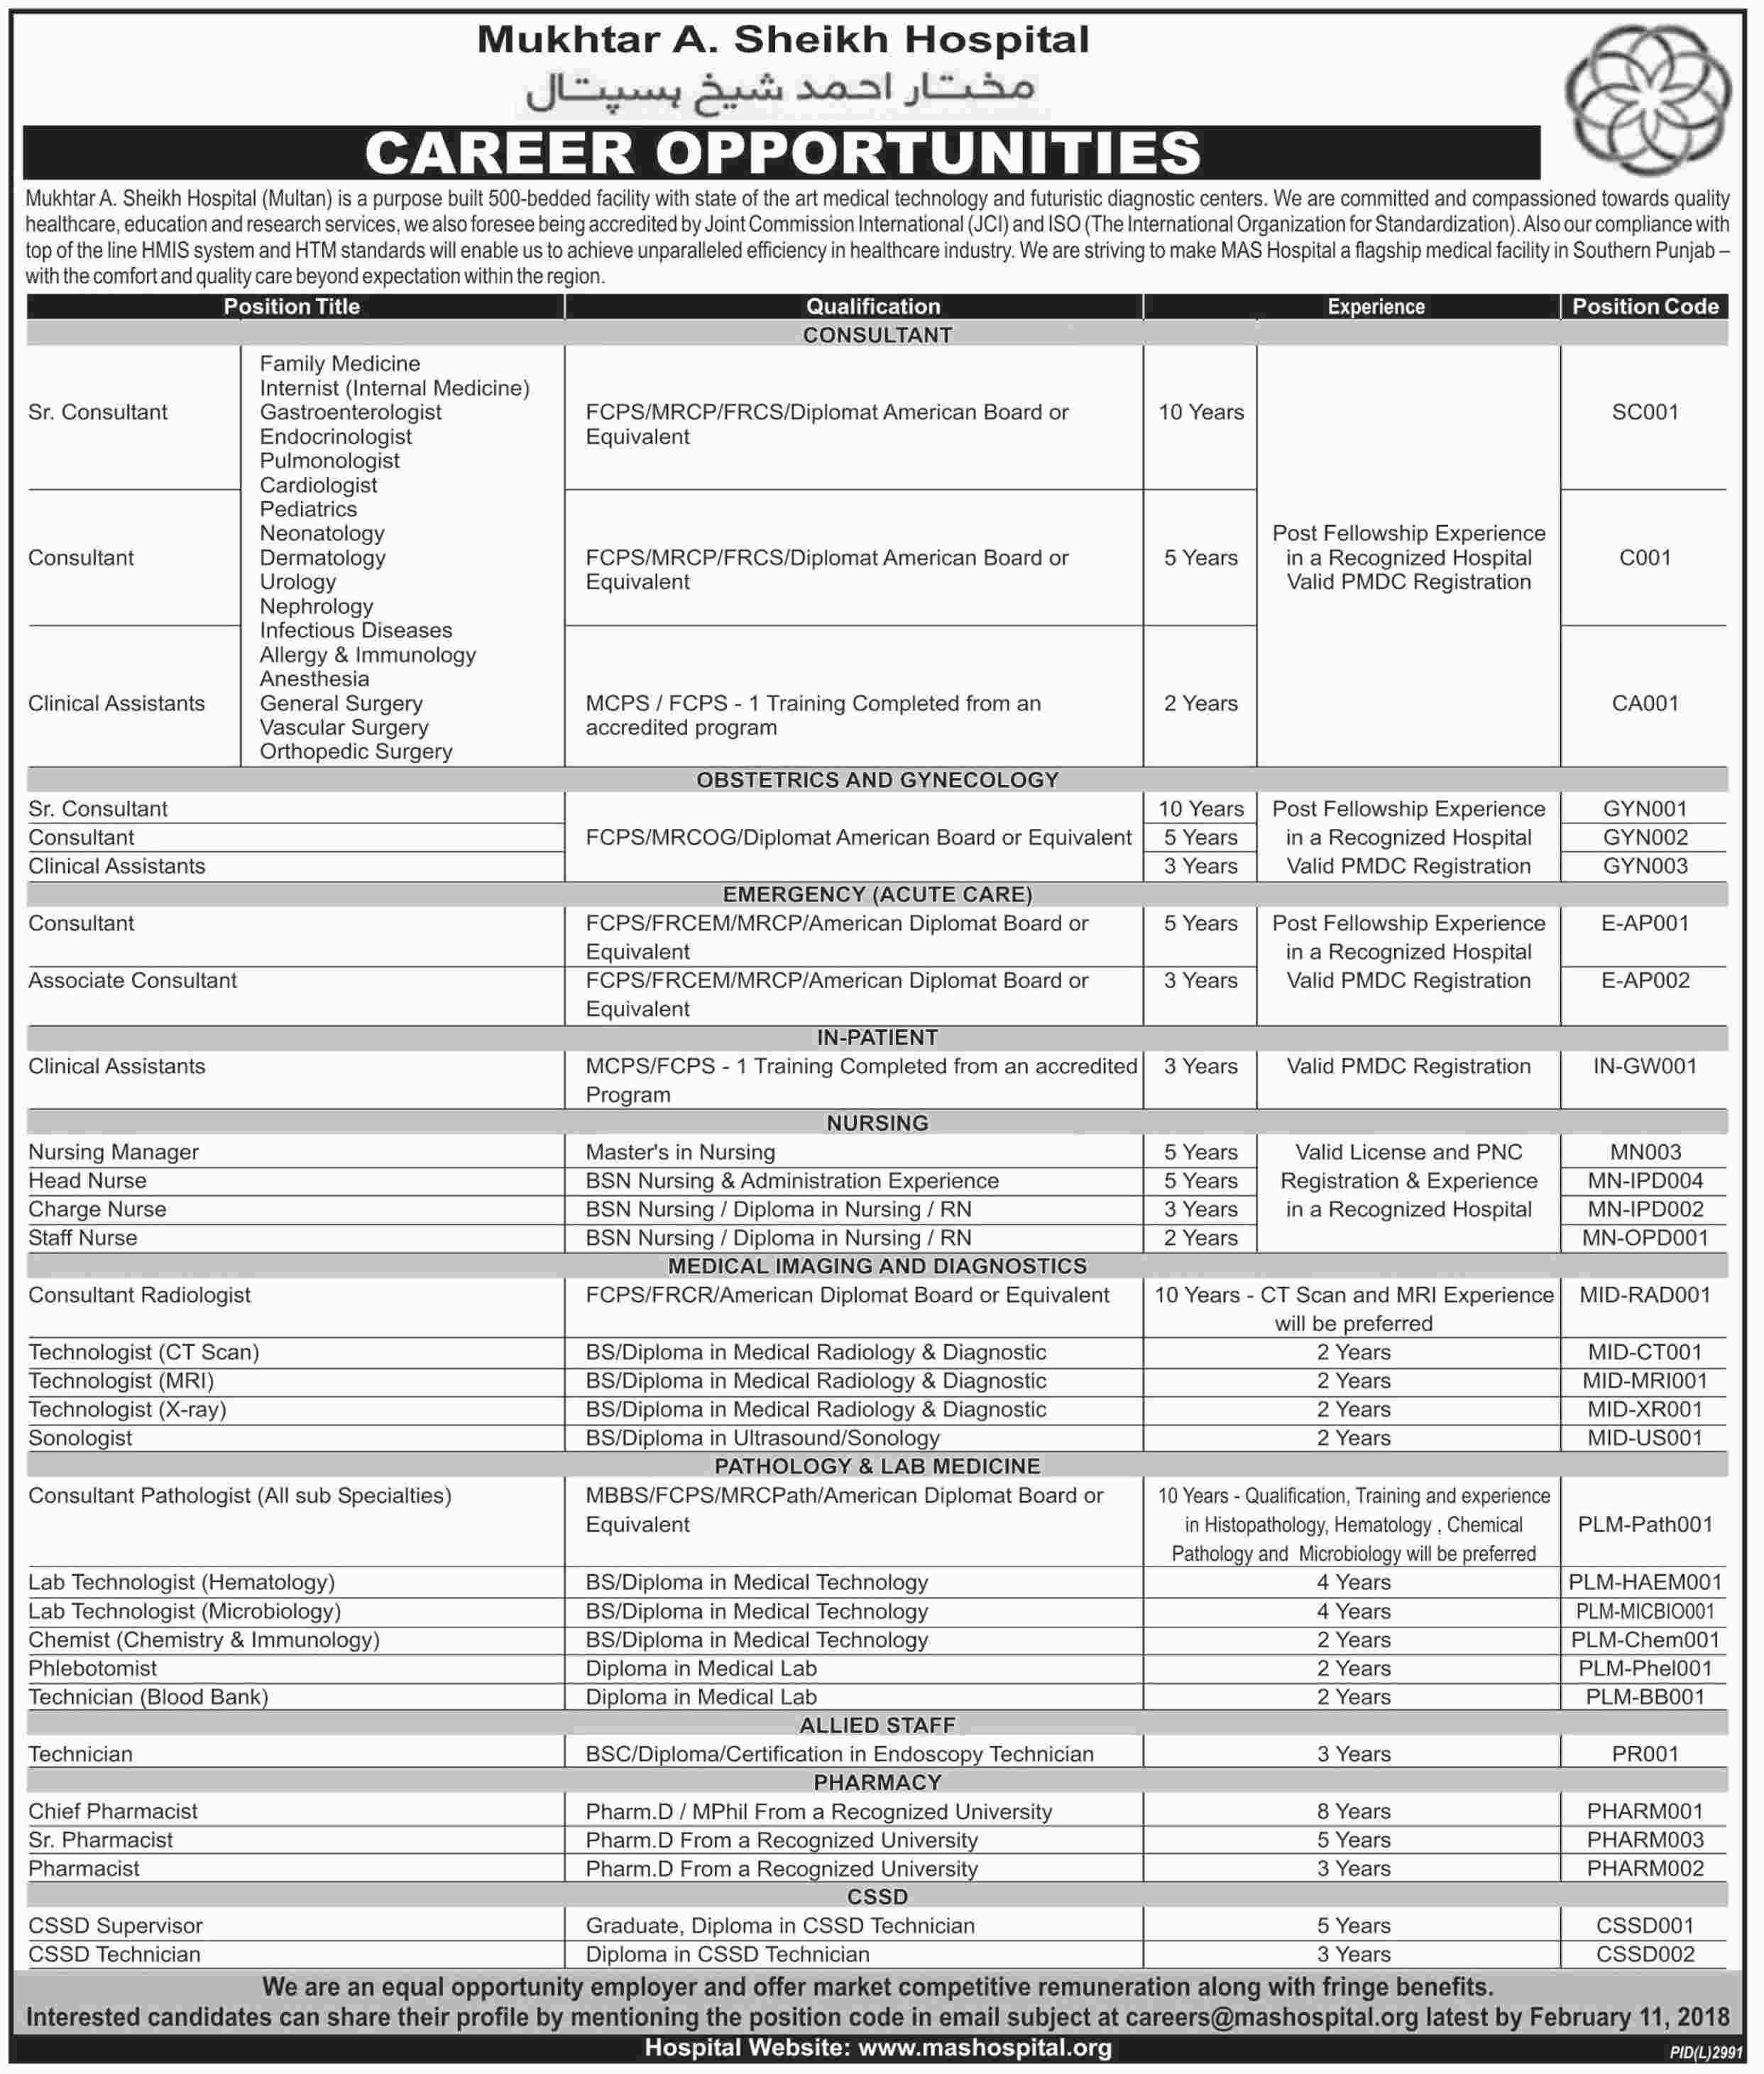 Jobs In Mukhtar Ahmad Sheikh Hospital 29 Jan 2018